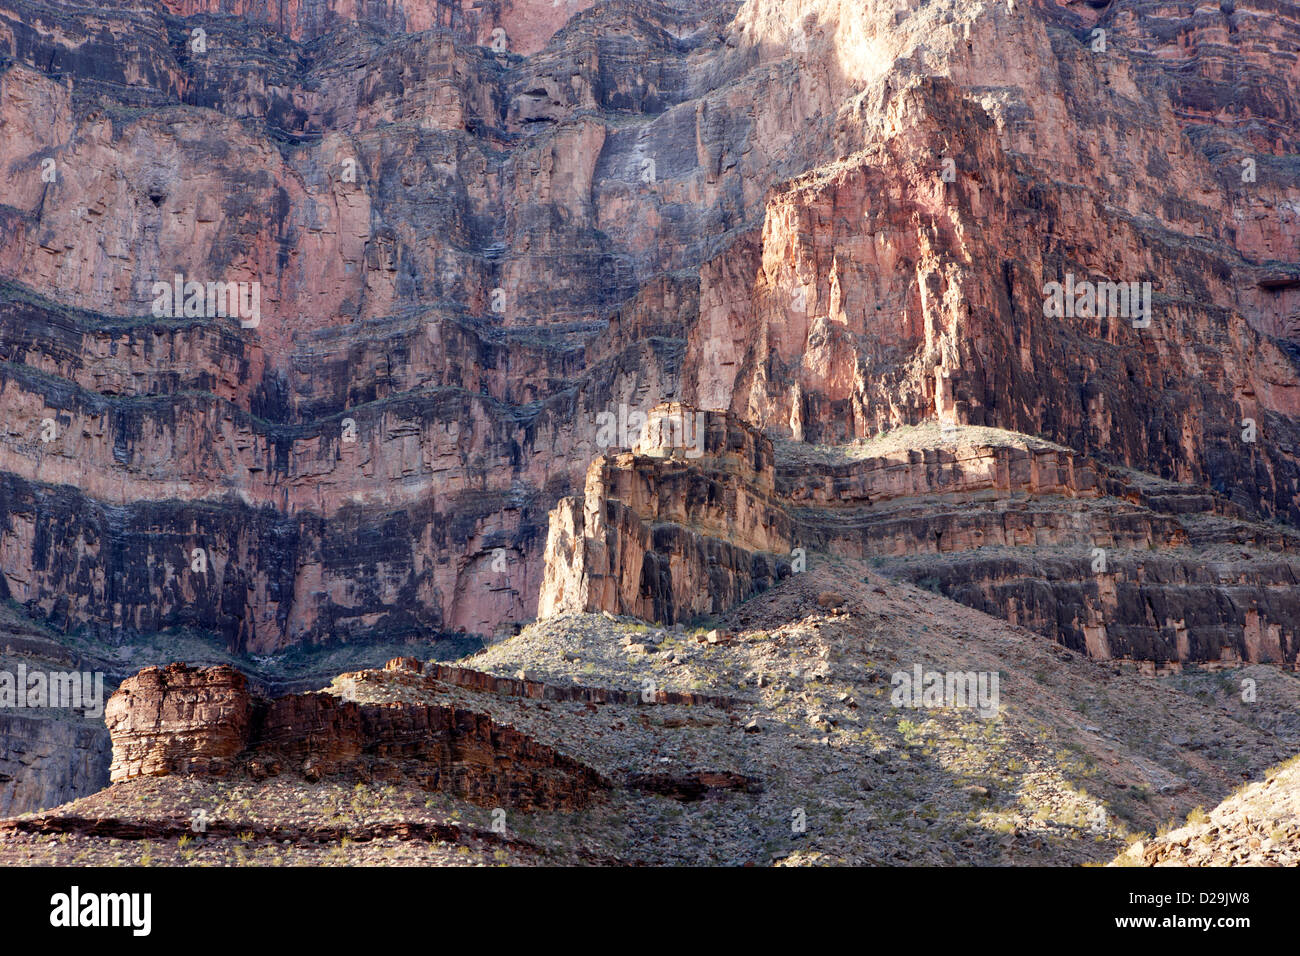 geologic details of rock strata on the wall of the grand canyon Arizona USA - Stock Image